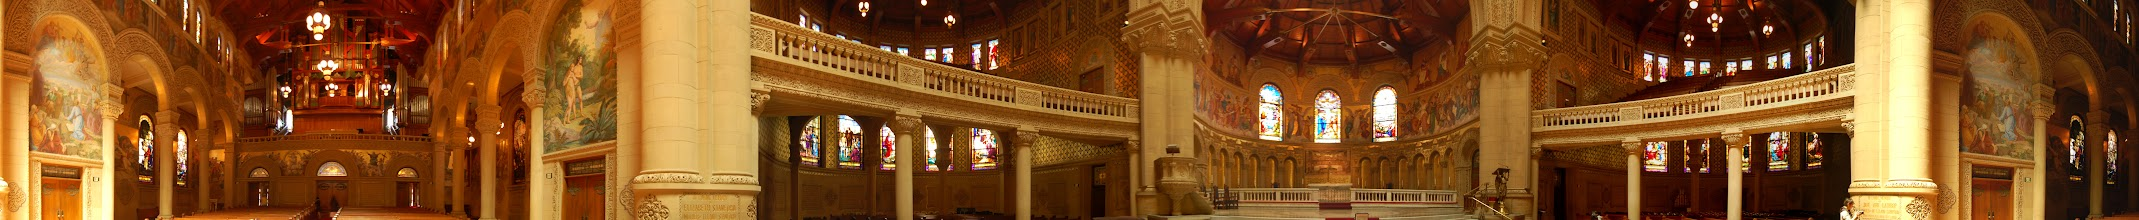 Photo: Requirement 5 (interior panorama): The inside of Memorial Church on a sunny afternoon. The rich gold hues stand out in the natural daylight, and the stained glass windows provide nice details of color. The panorama captures a 360-degree view of the interior of the church, but it doesn't really show the grandeur and depth of the nave and aisles. Shot at f/4.0, 1/2 sec because, despite the sunlight, the church was still quite dark. Relatively short focal length to capture a wider field of view. Post-processing: Photomerged in Photoshop, then cropped.